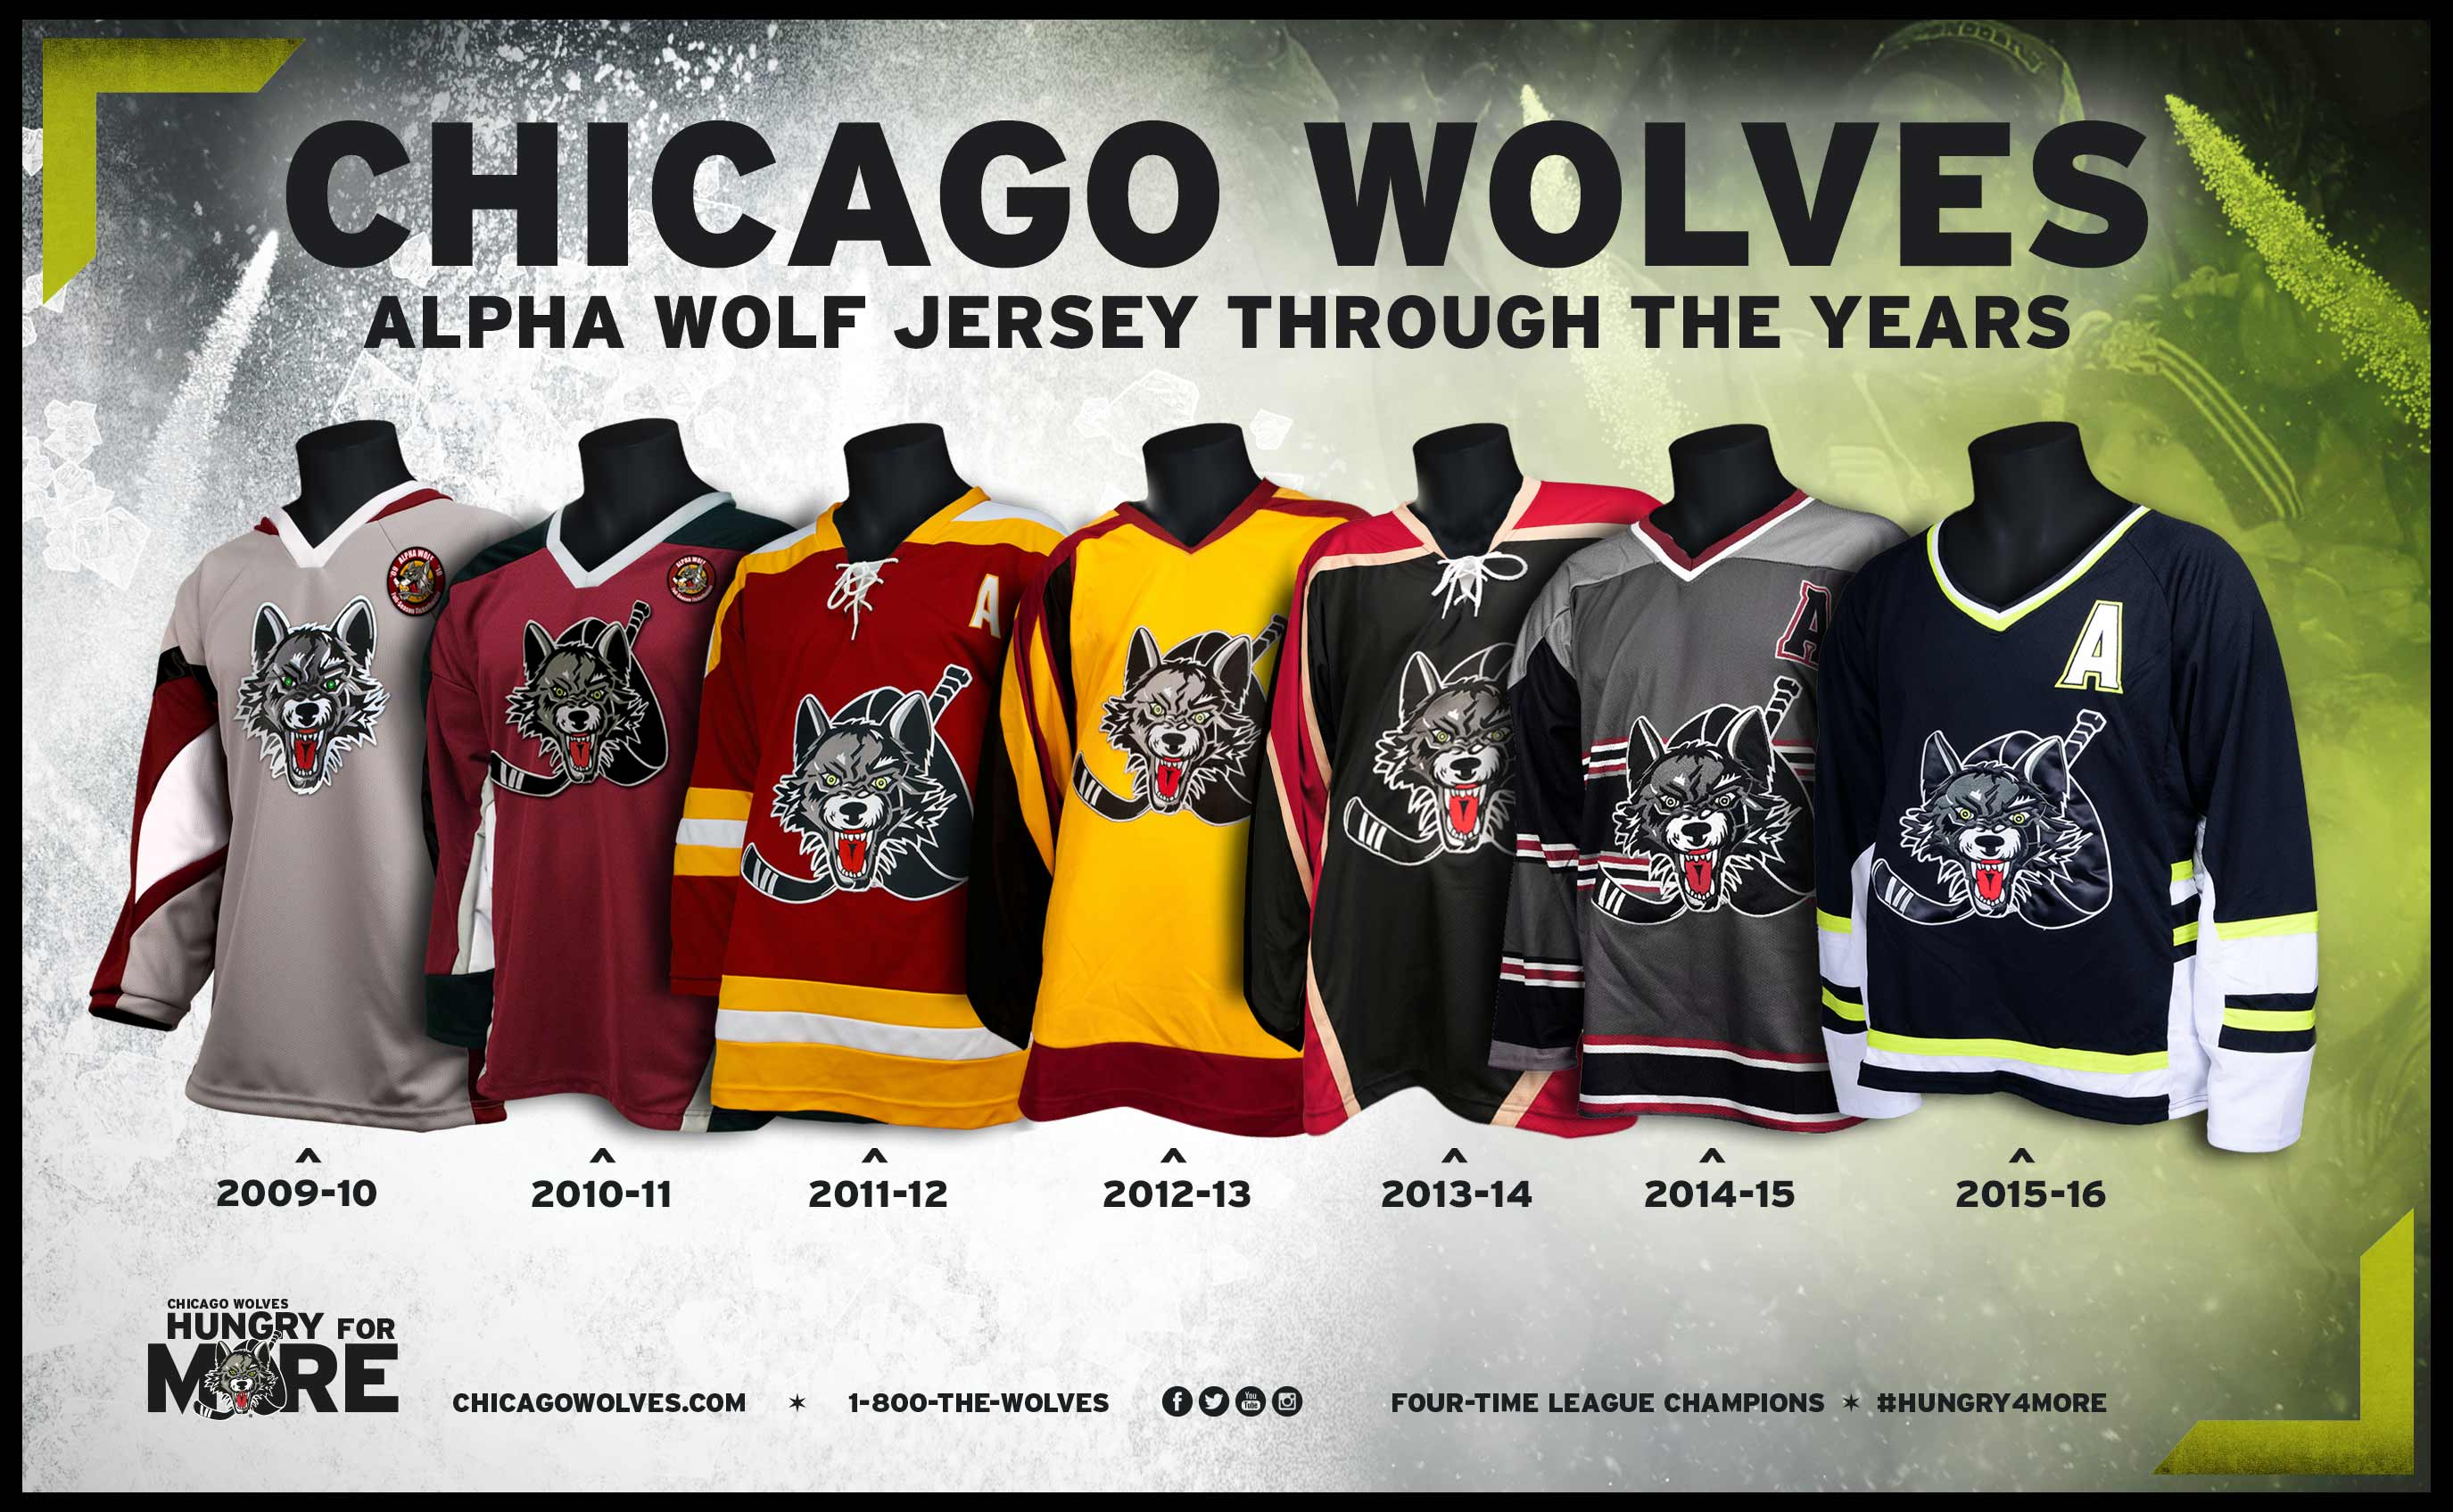 For Chicago Wolves Store we currently have 2 coupons and 1 deals. Our users can save with our coupons on average about $ Todays best offer is Save 20% Off. If you can't find a coupon or a deal for you product then sign up for alerts and you will get updates on every new coupon added for Chicago Wolves Store.